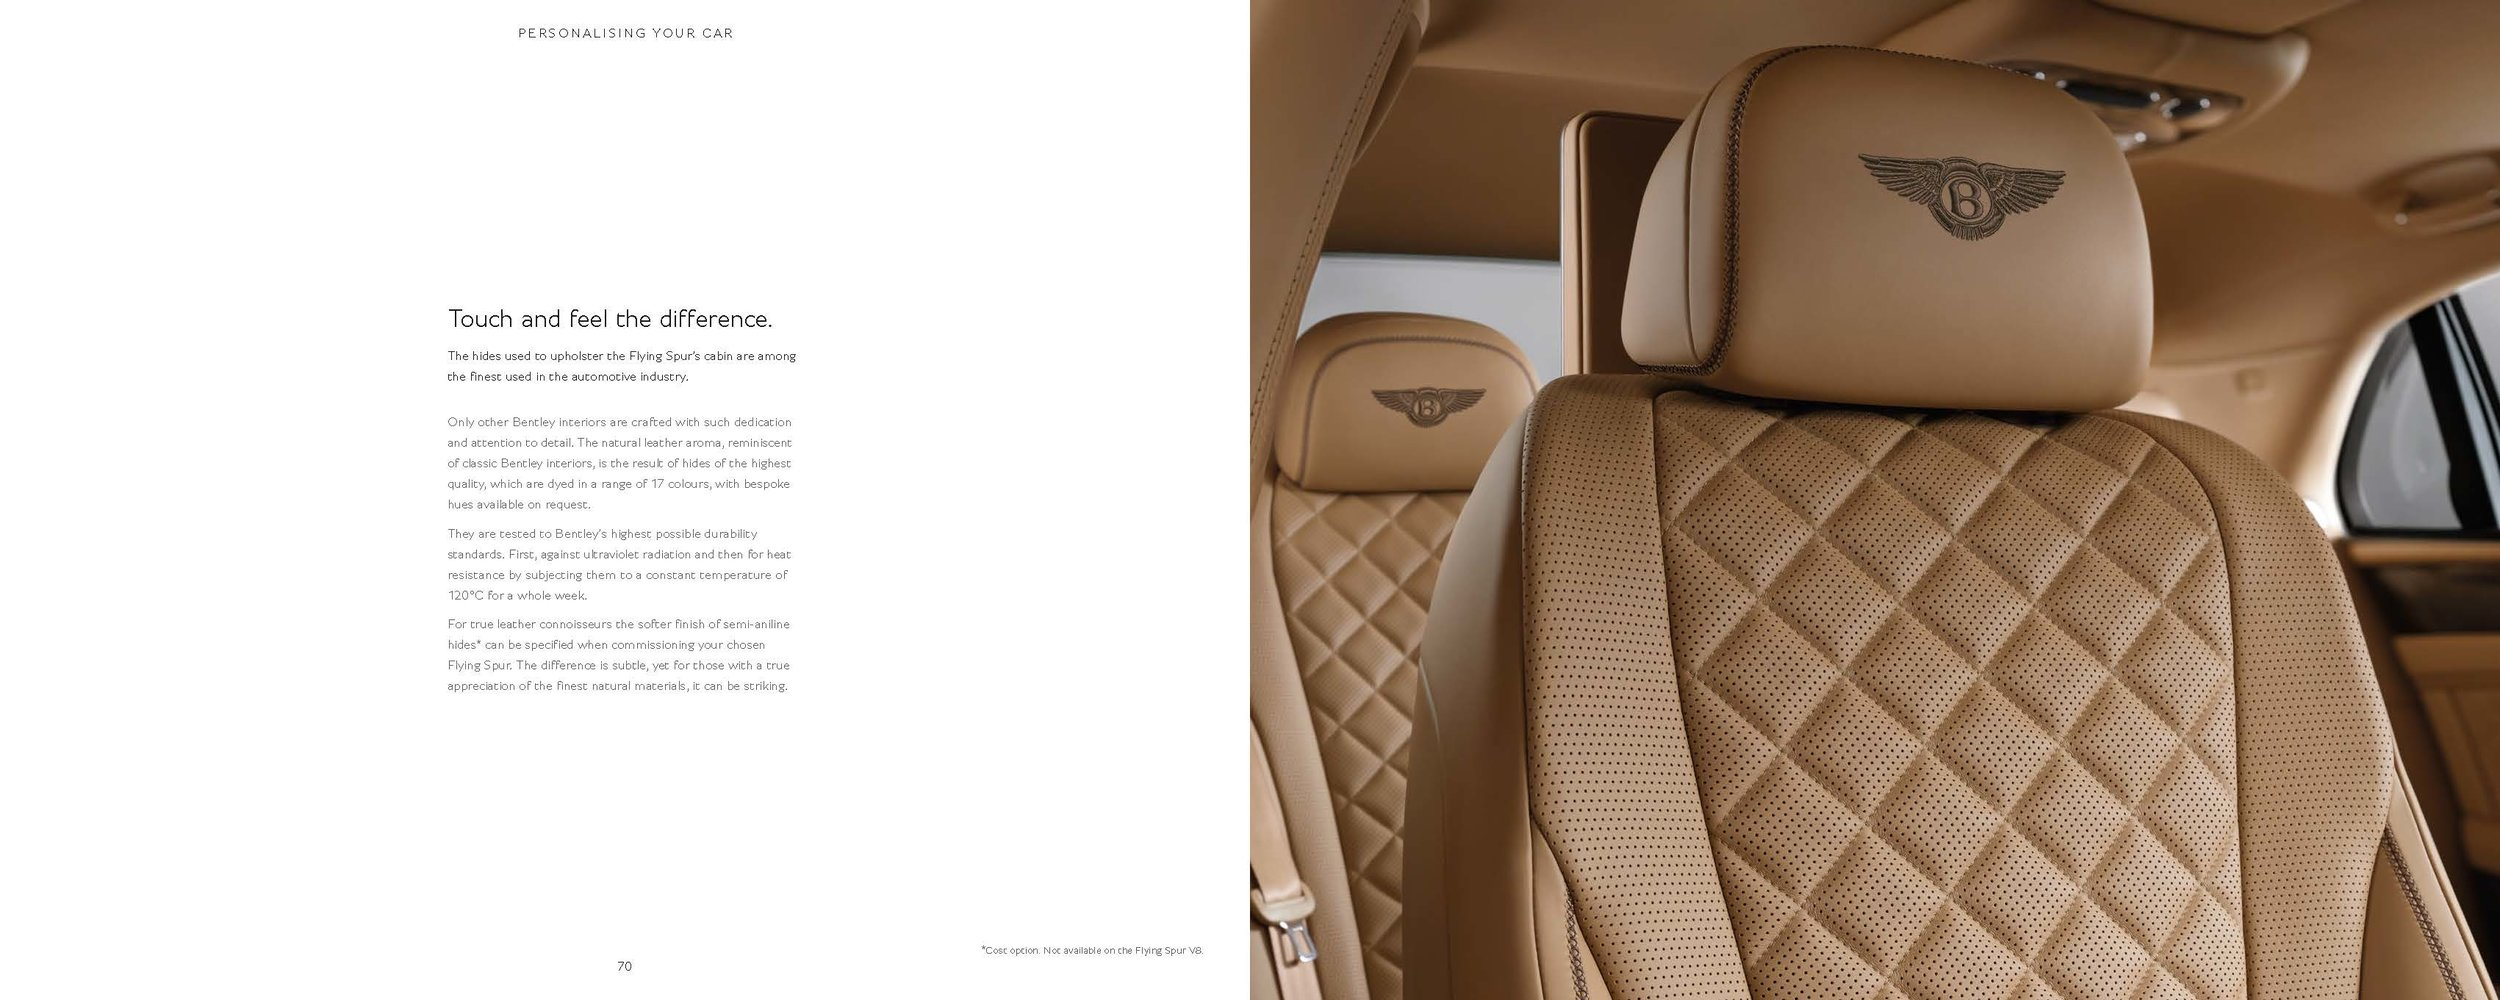 BENFS-16-012_Flying Spur Customer Book Cover & Contents CLEAN_v15_Page_36.jpg